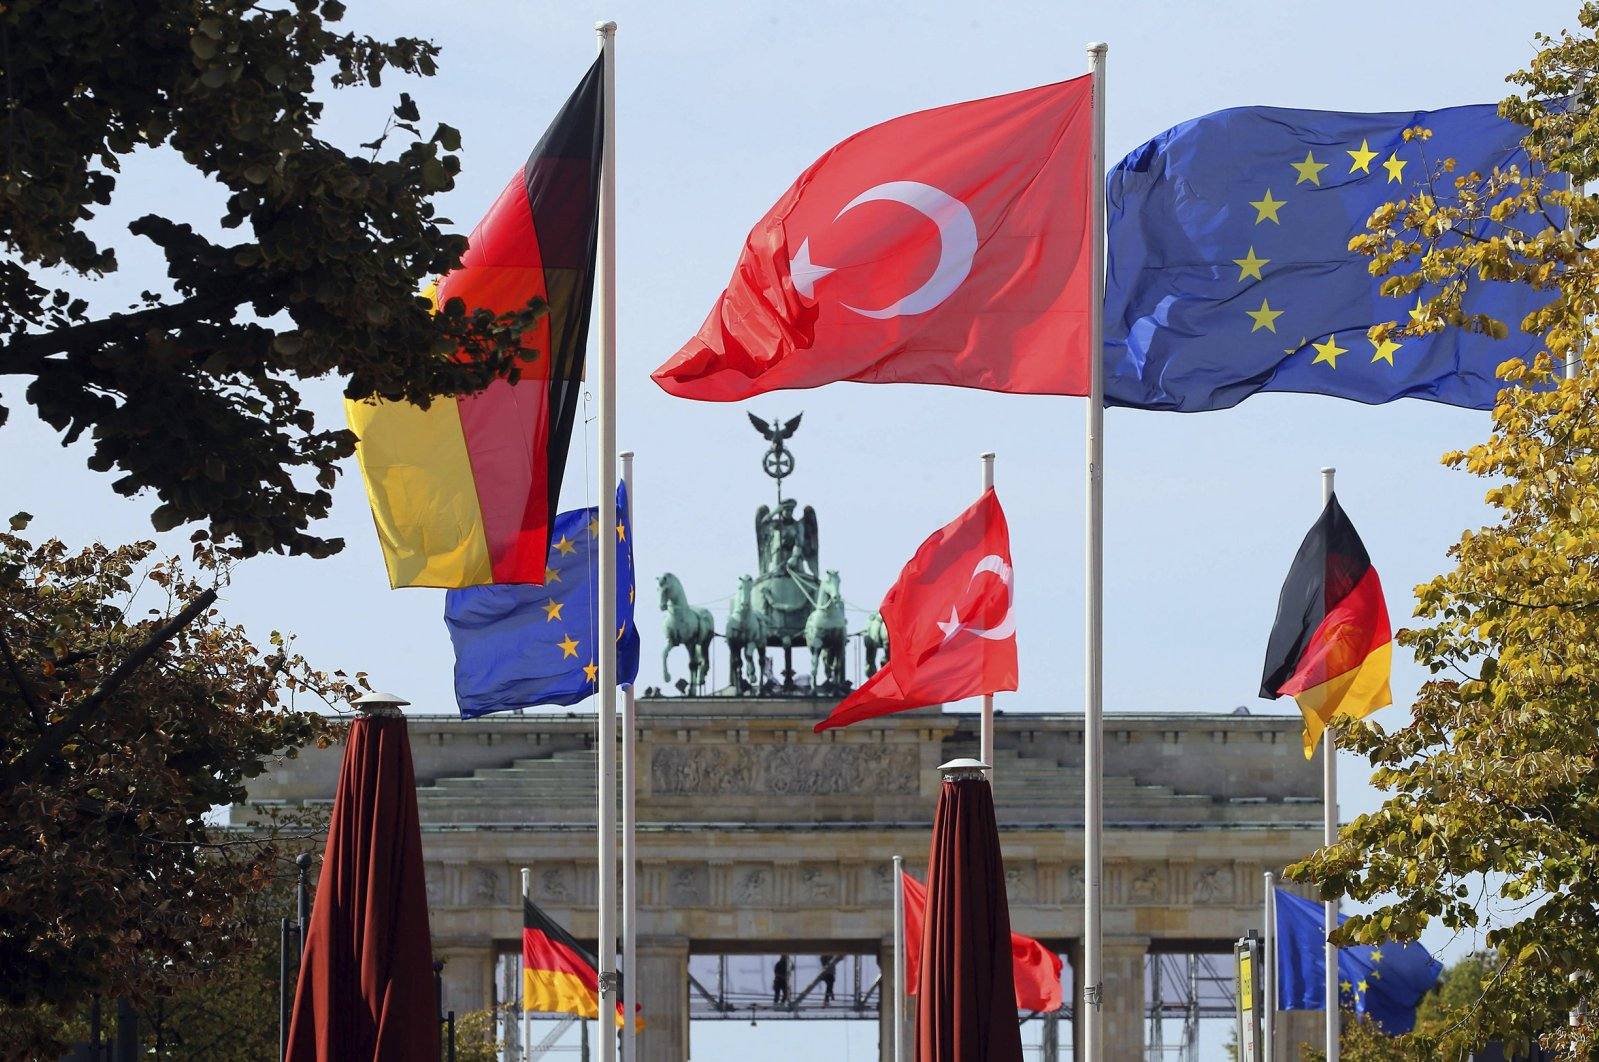 The flags of Germany, Turkey and the European Union flutter in front of Berlin's landmark the Brandenburg Gate on Sept. 26, 2018. (AFP Photo)